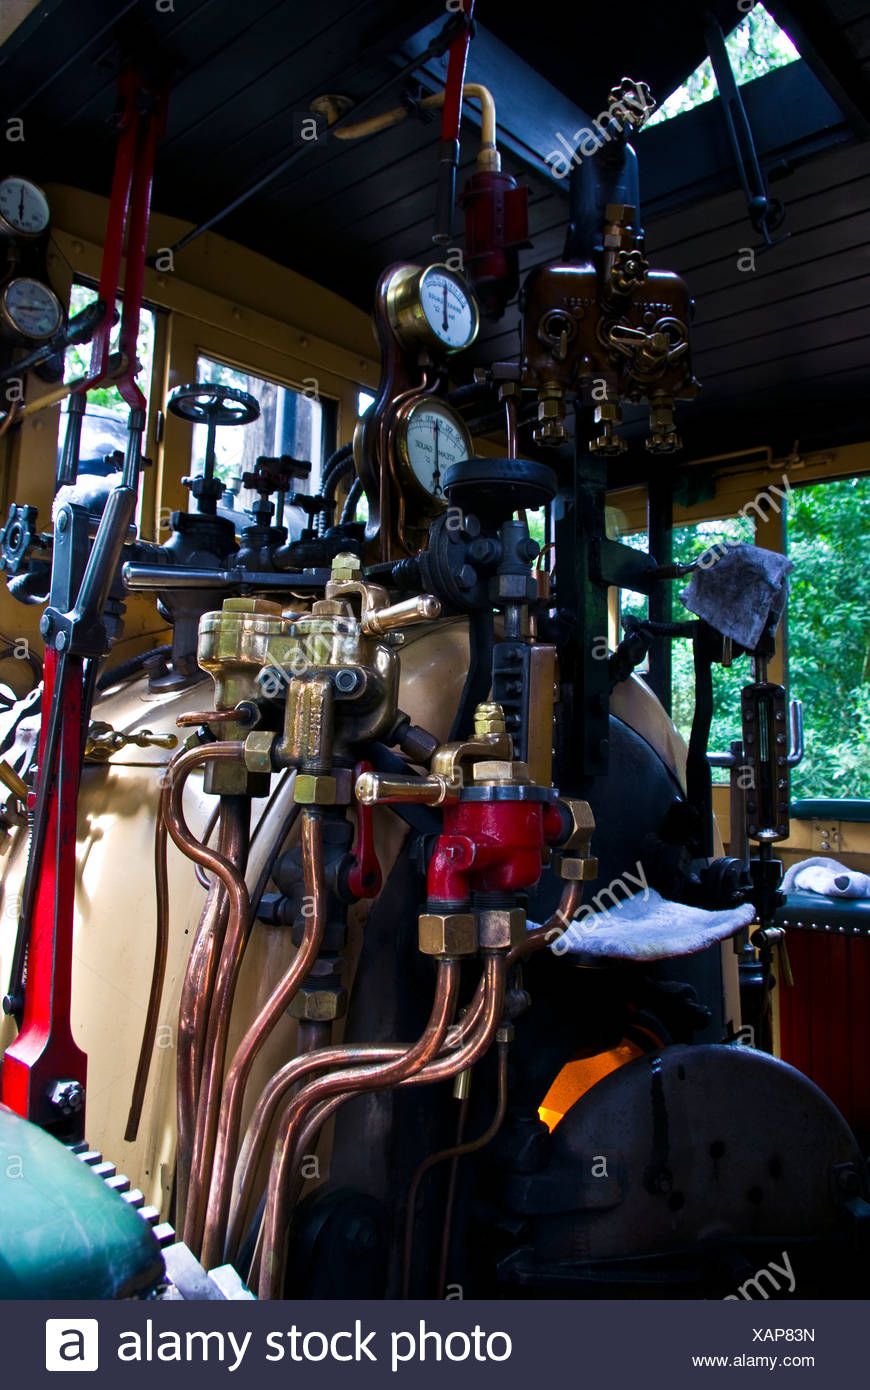 The boiler room and calliper breaks on a restored antique steam train. - Stock Image